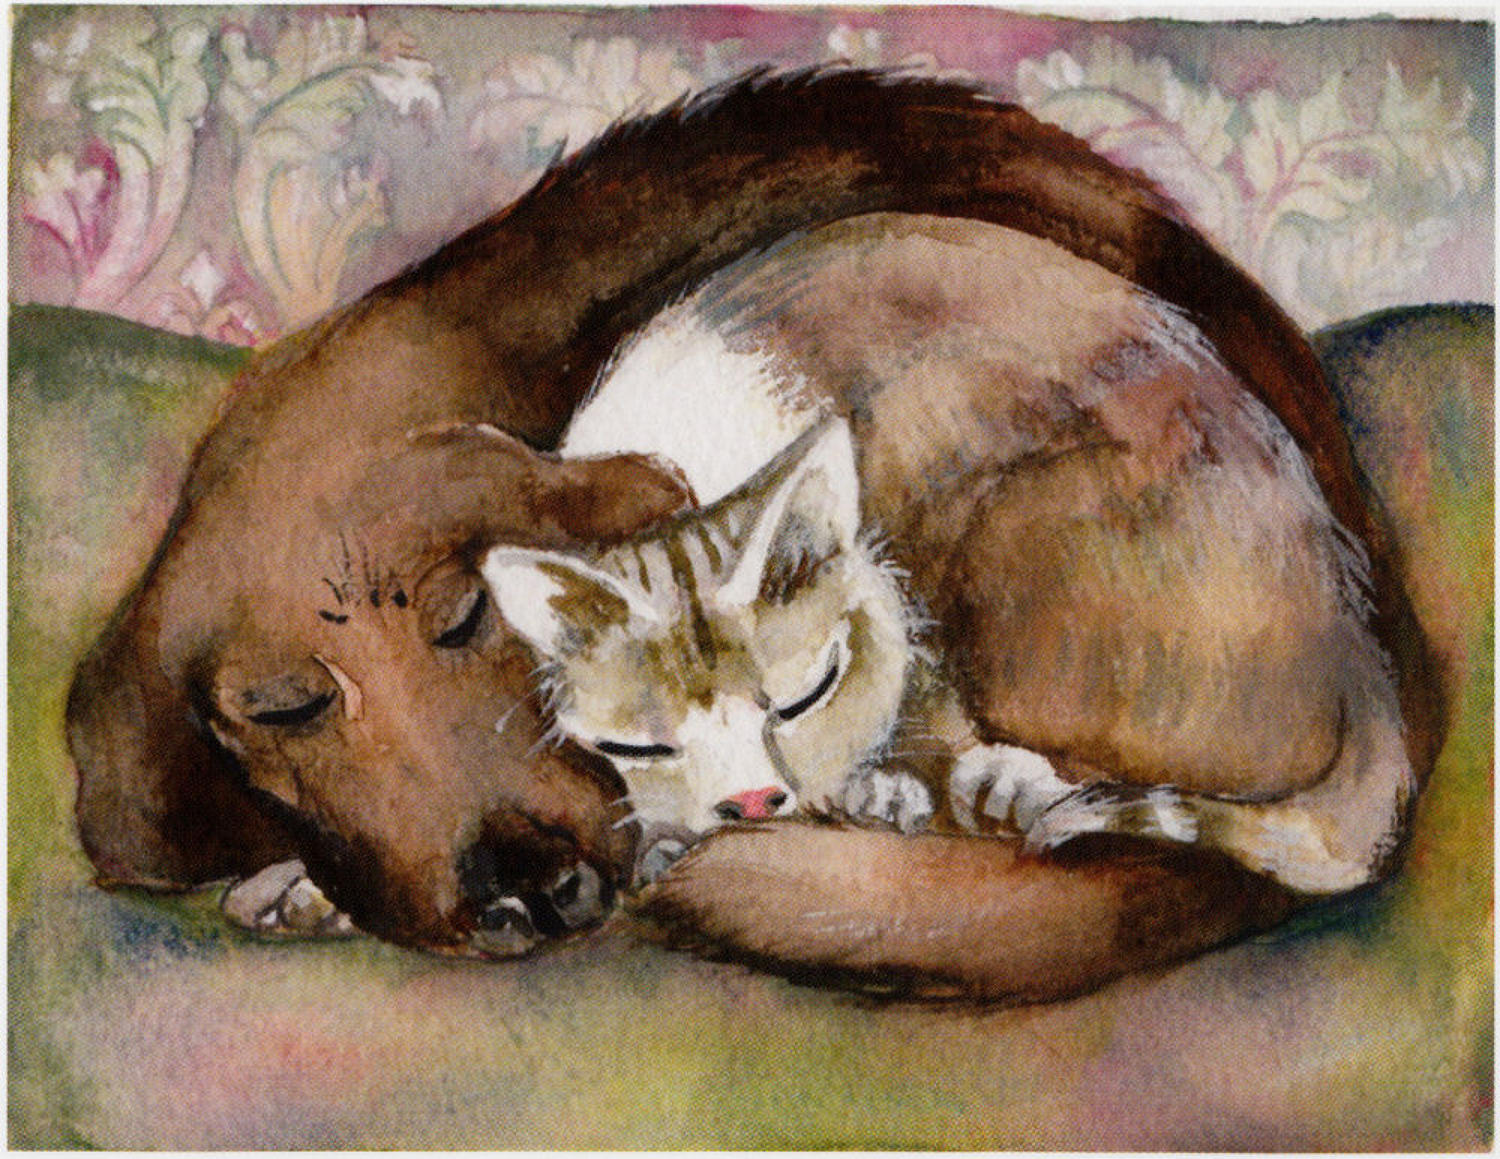 Sleeping cat & dog